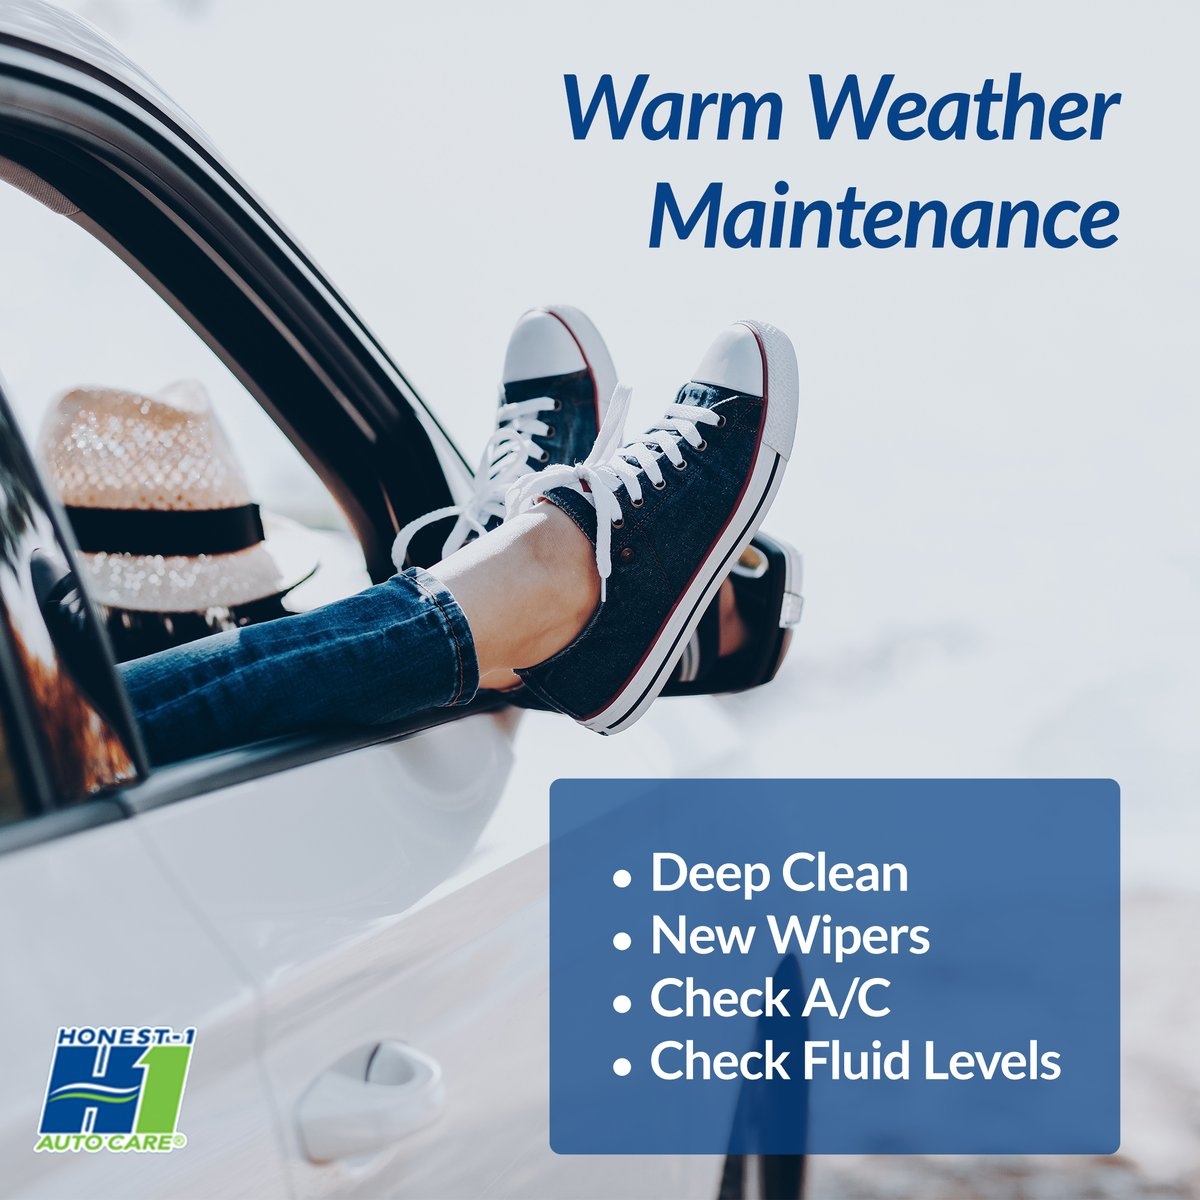 Warm weather means it's time to check off some car maintenance to do's! Give us a call and we can help you out! #HappyWednesday #SafetyisOurPriority #CarTrouble #Honest1Difference #CarService #OilChange #TireRotation #WheelAlignment #EngineRepair #BrakeRepair #JohnsCreekpic.twitter.com/KRZ1edykQW